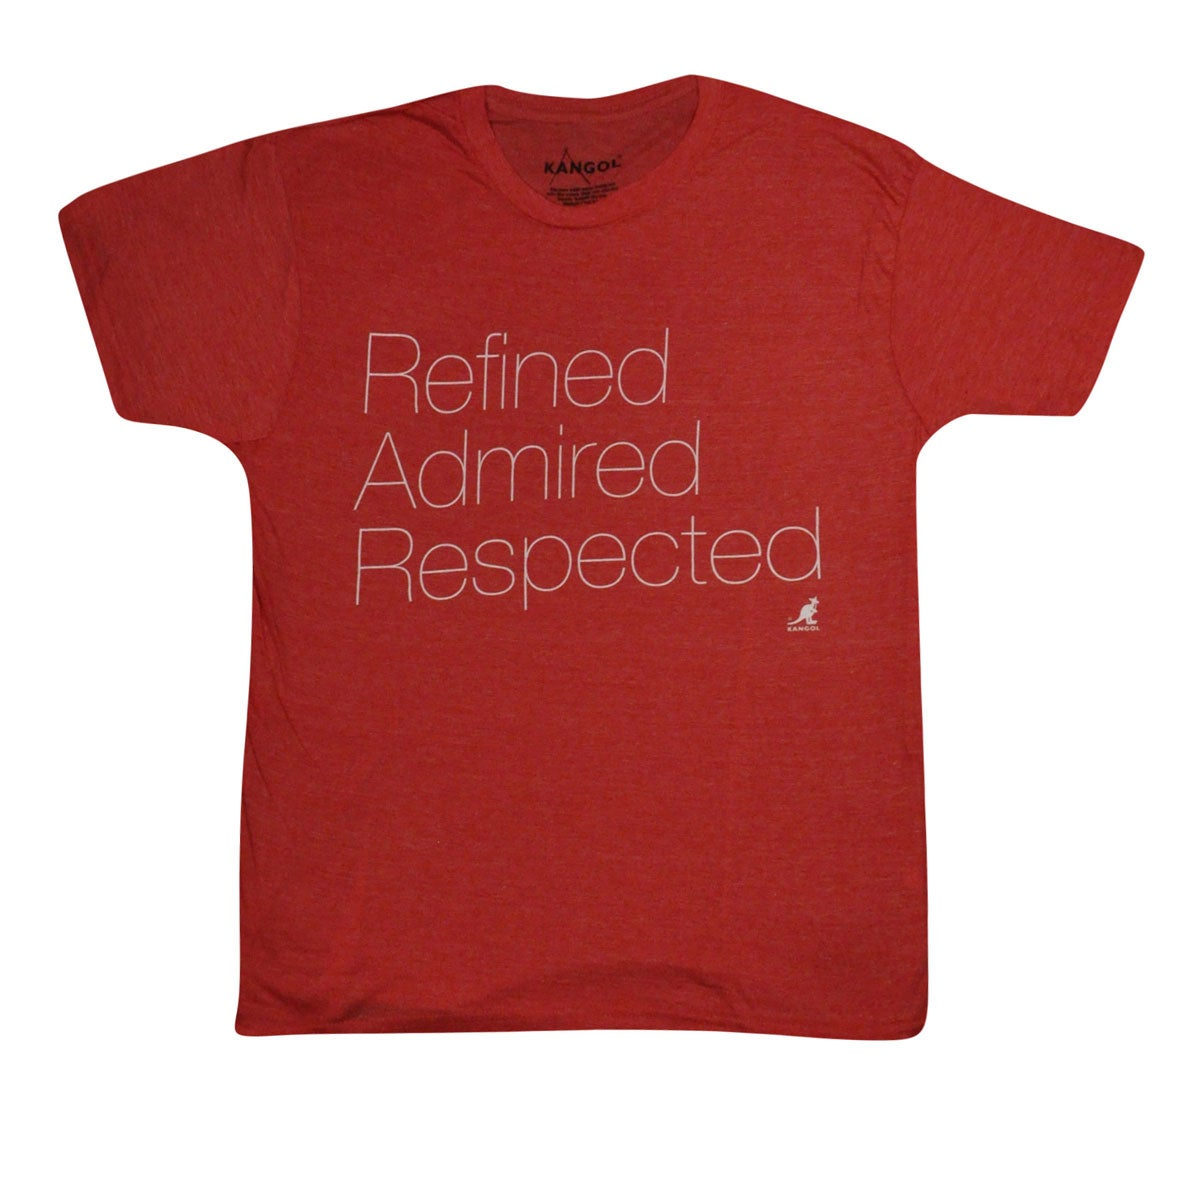 Kangol Words Tee in Red Heather